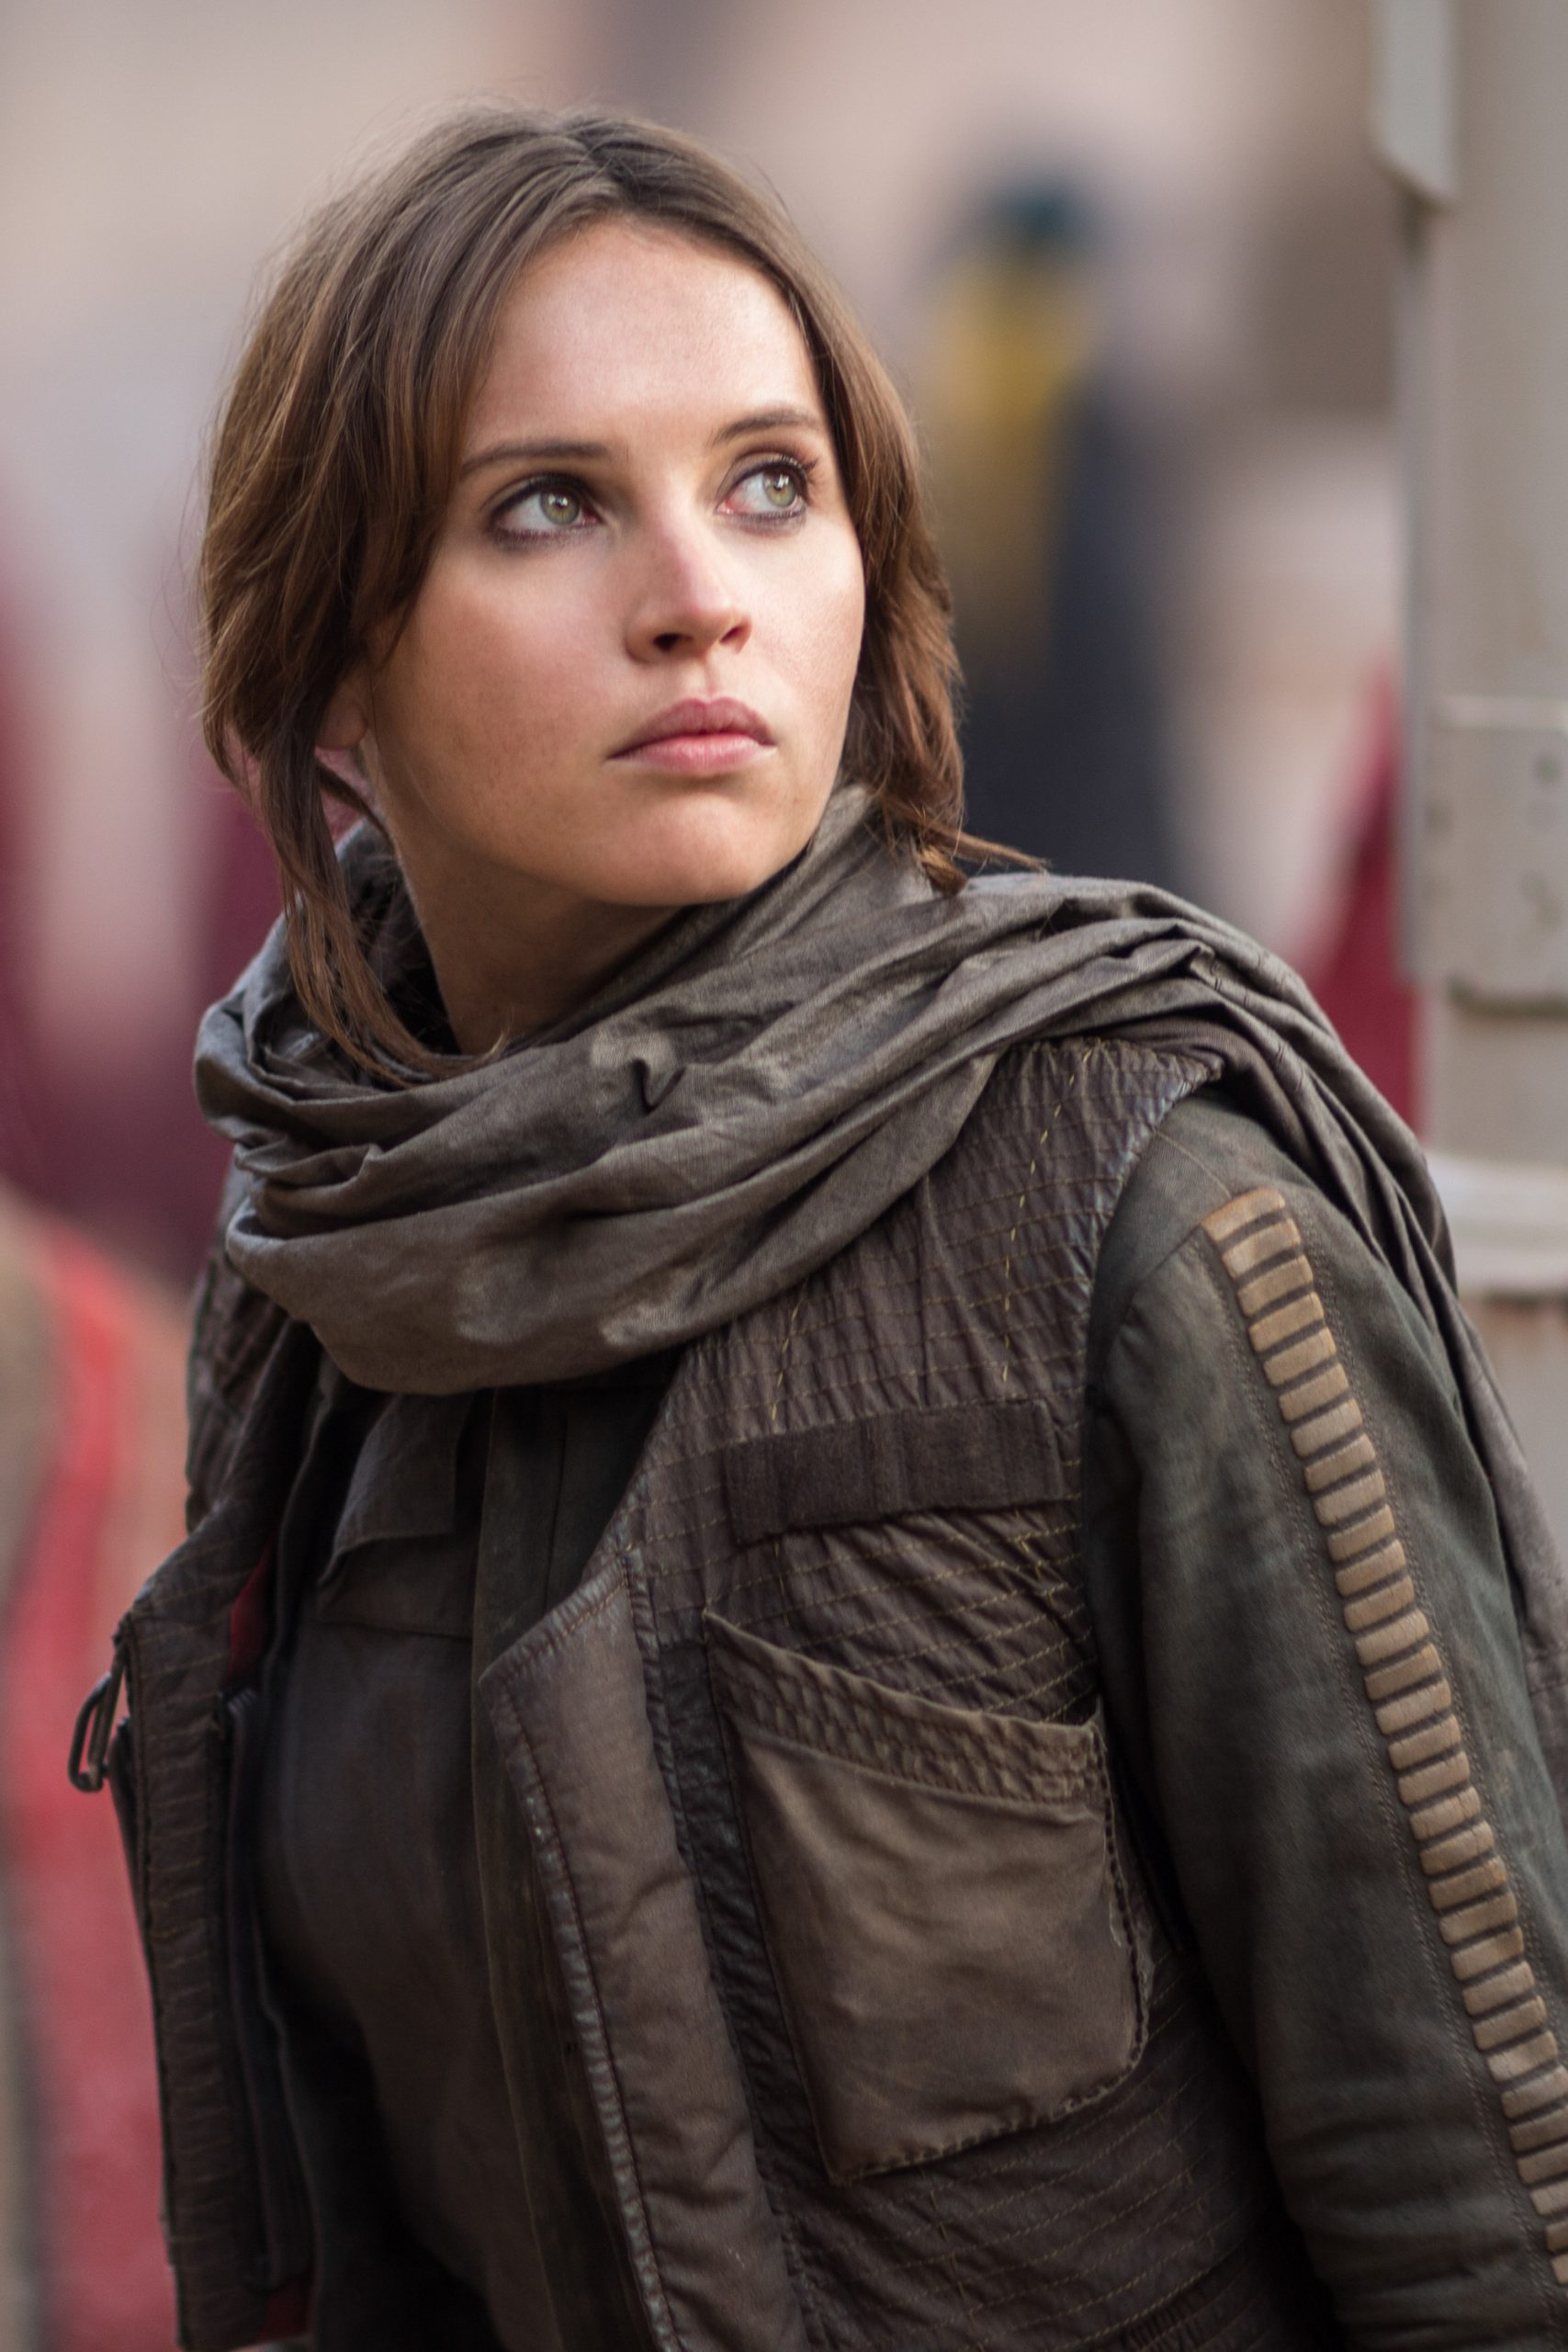 Jyn Erso Rogue One A Star Wars Story - Download hd wallpapers